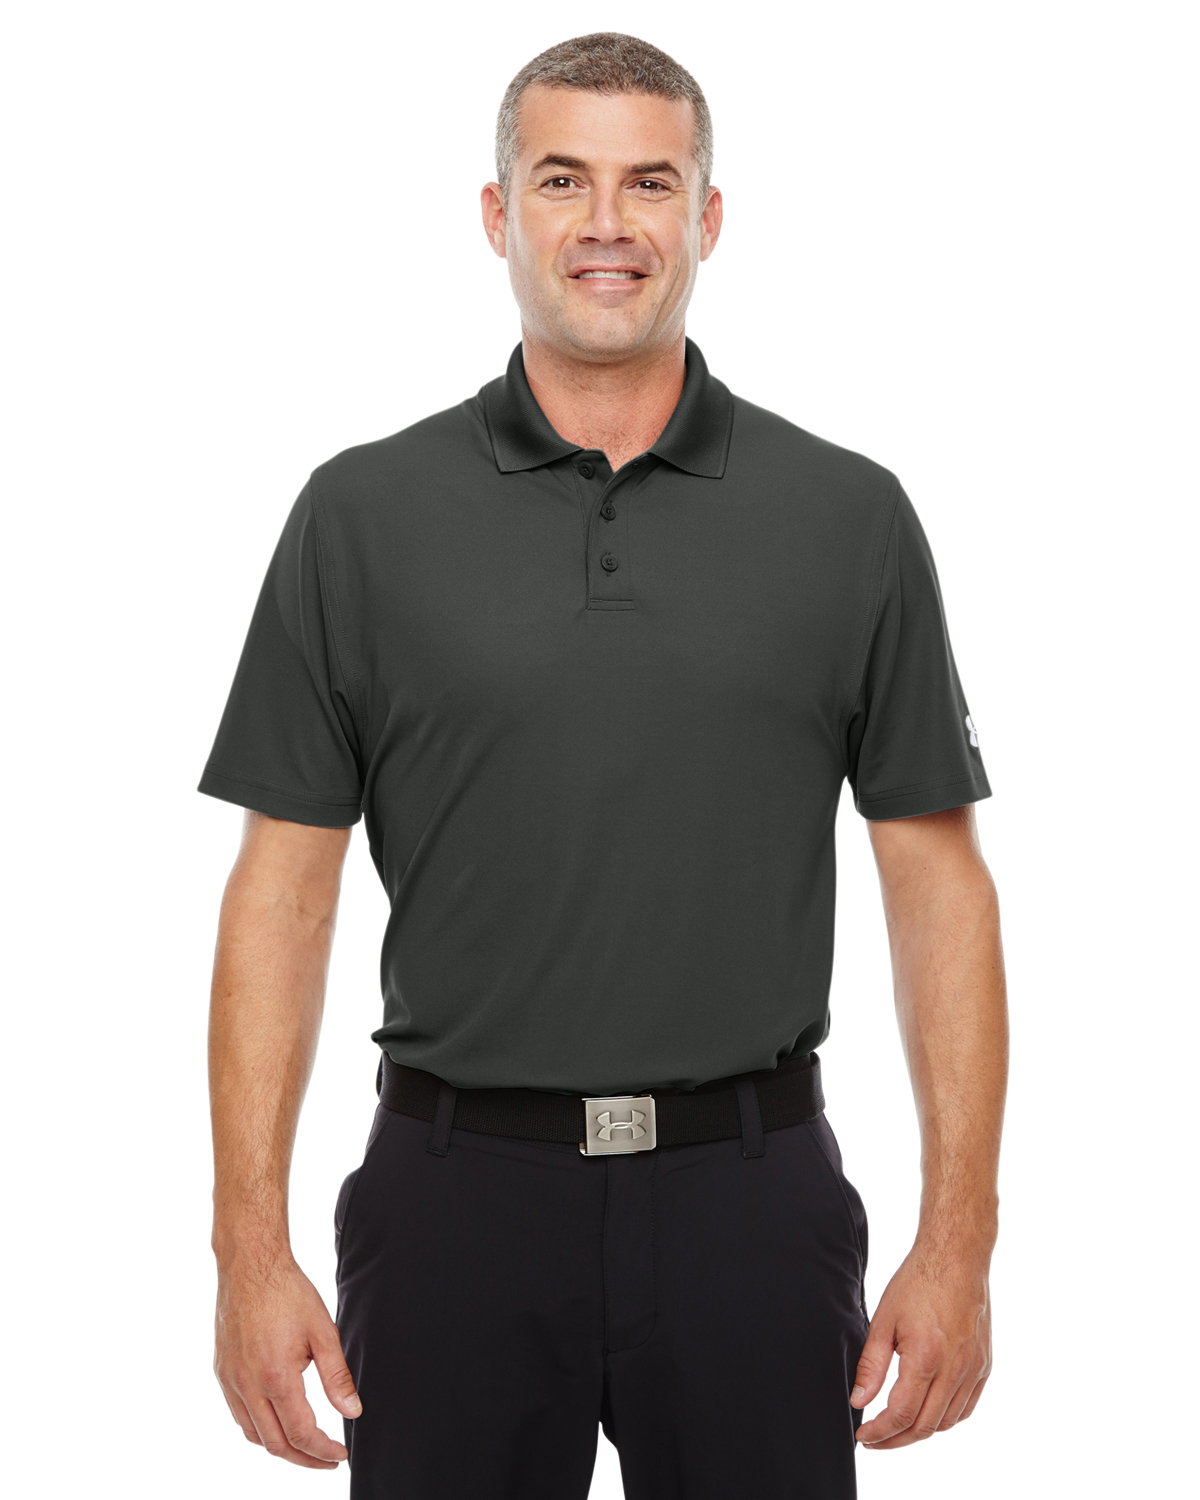 Under Armour 1261172 - Men's Corp Performance Polo